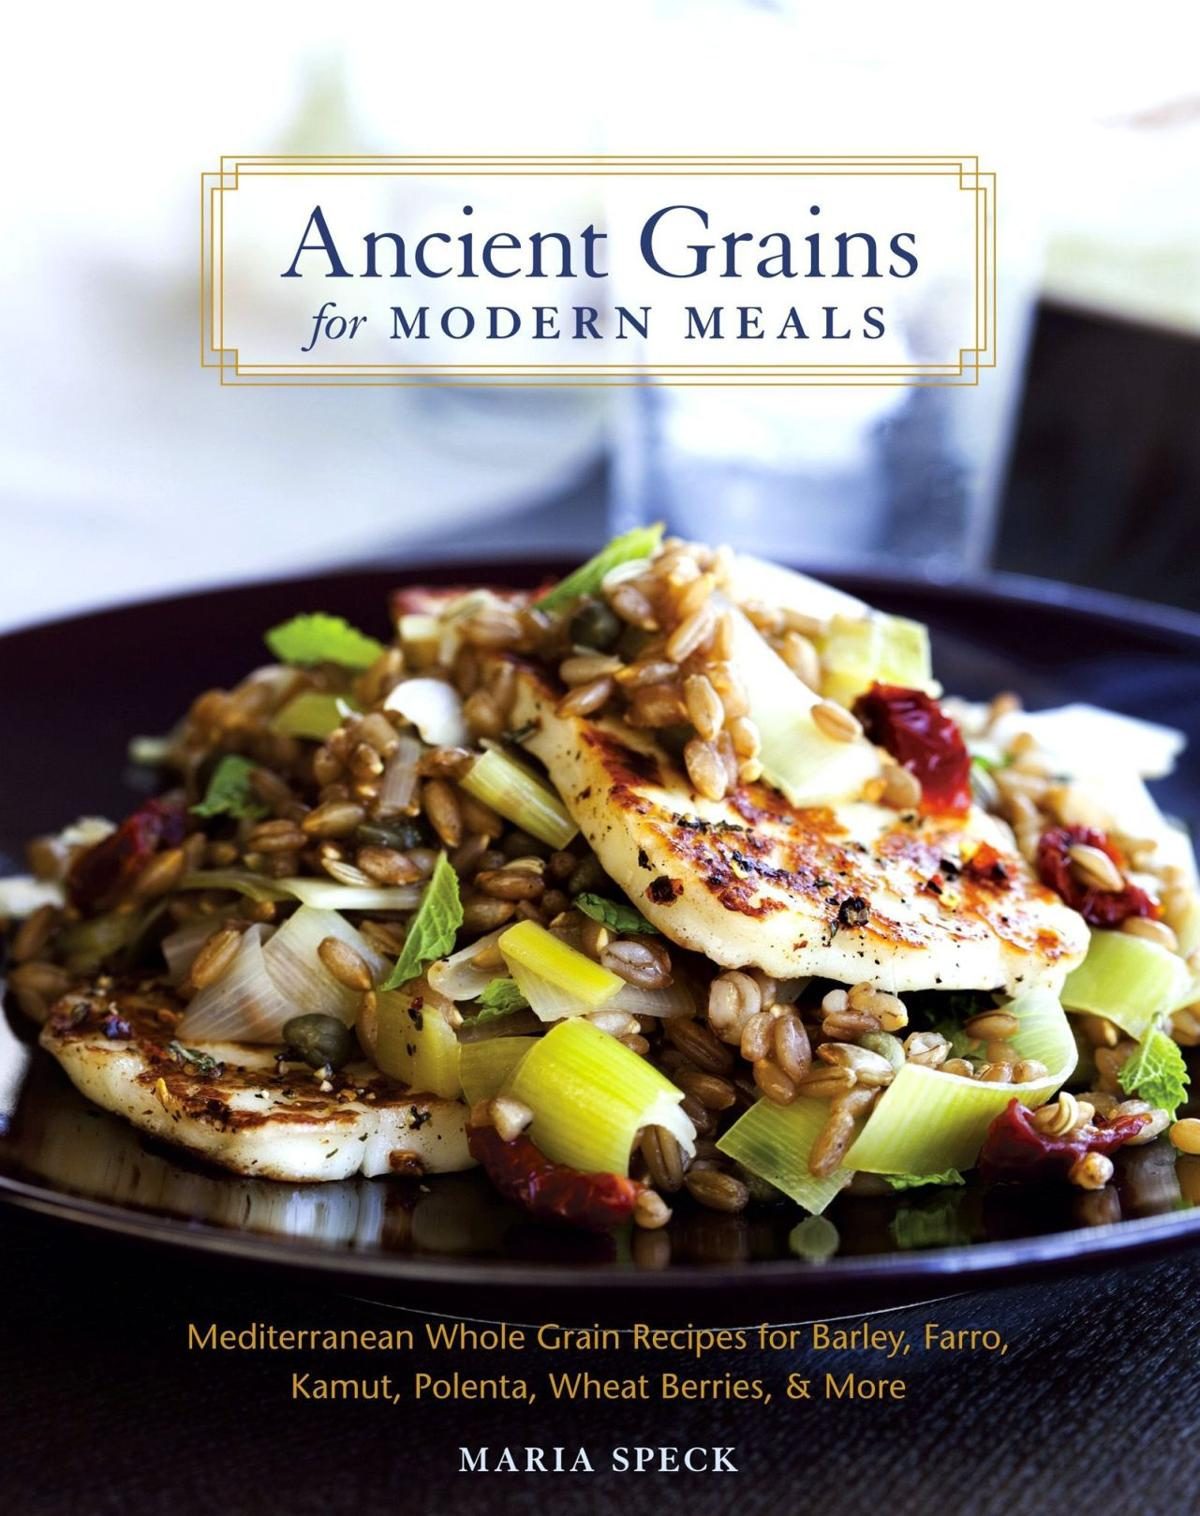 Spring dishes full of grains, chicken